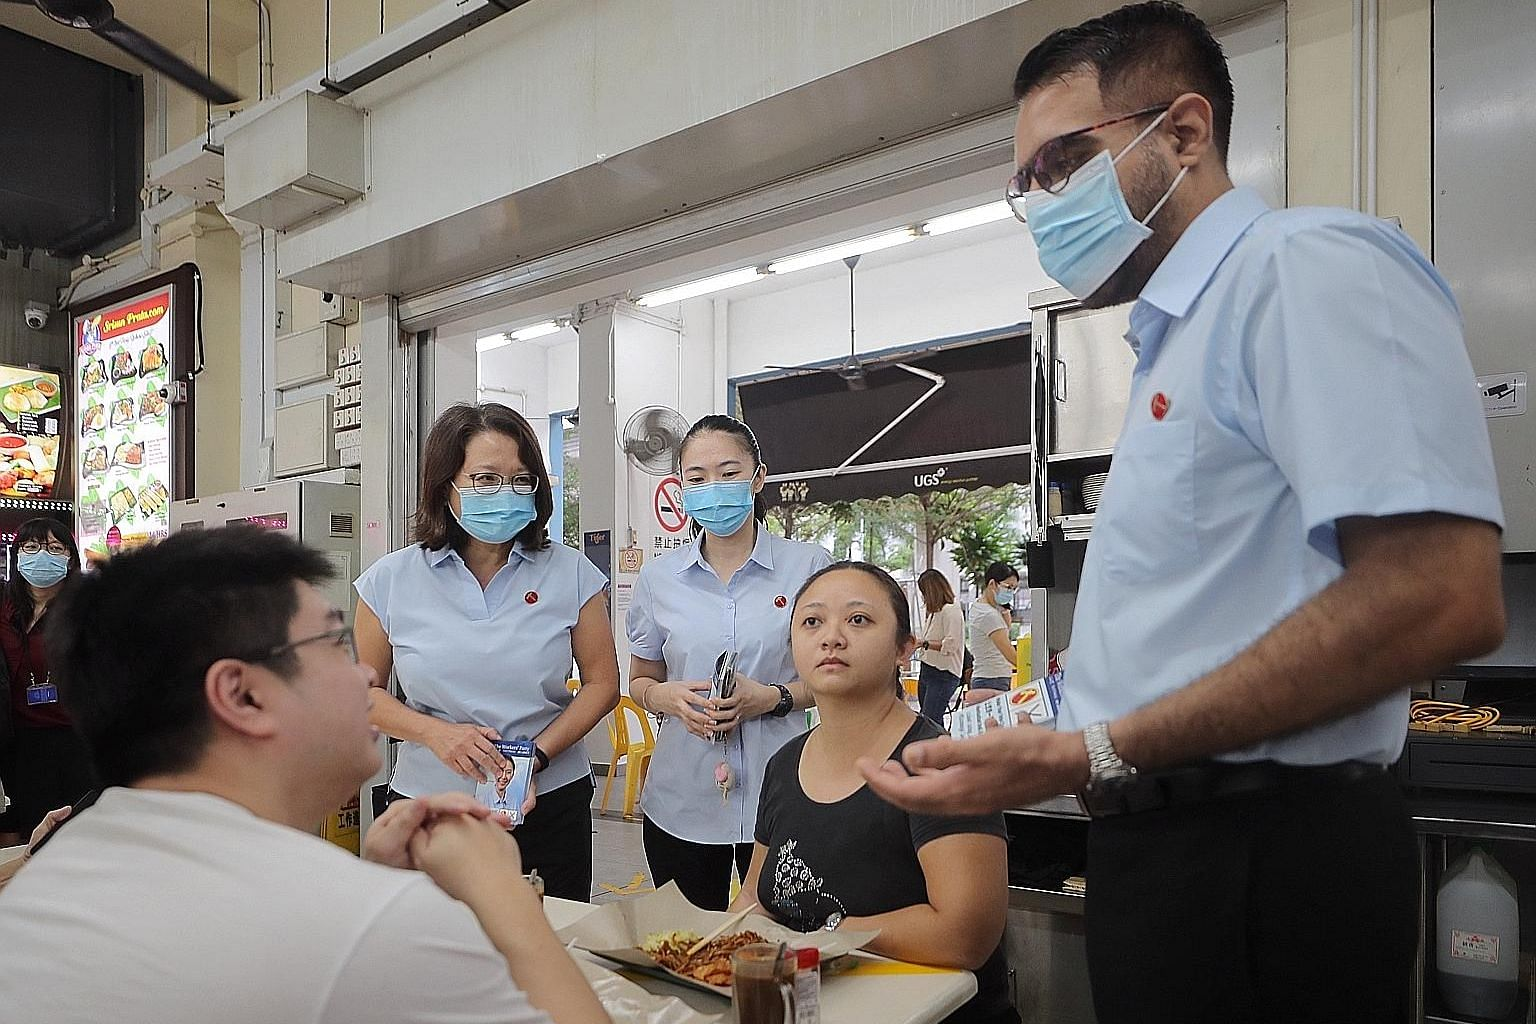 Workers' Party chief Pritam Singh, accompanied by party chairman Sylvia Lim (far left) and Punggol West SMC candidate Tan Chen Chen, chatting with customers at a coffee shop in Punggol Way yesterday.